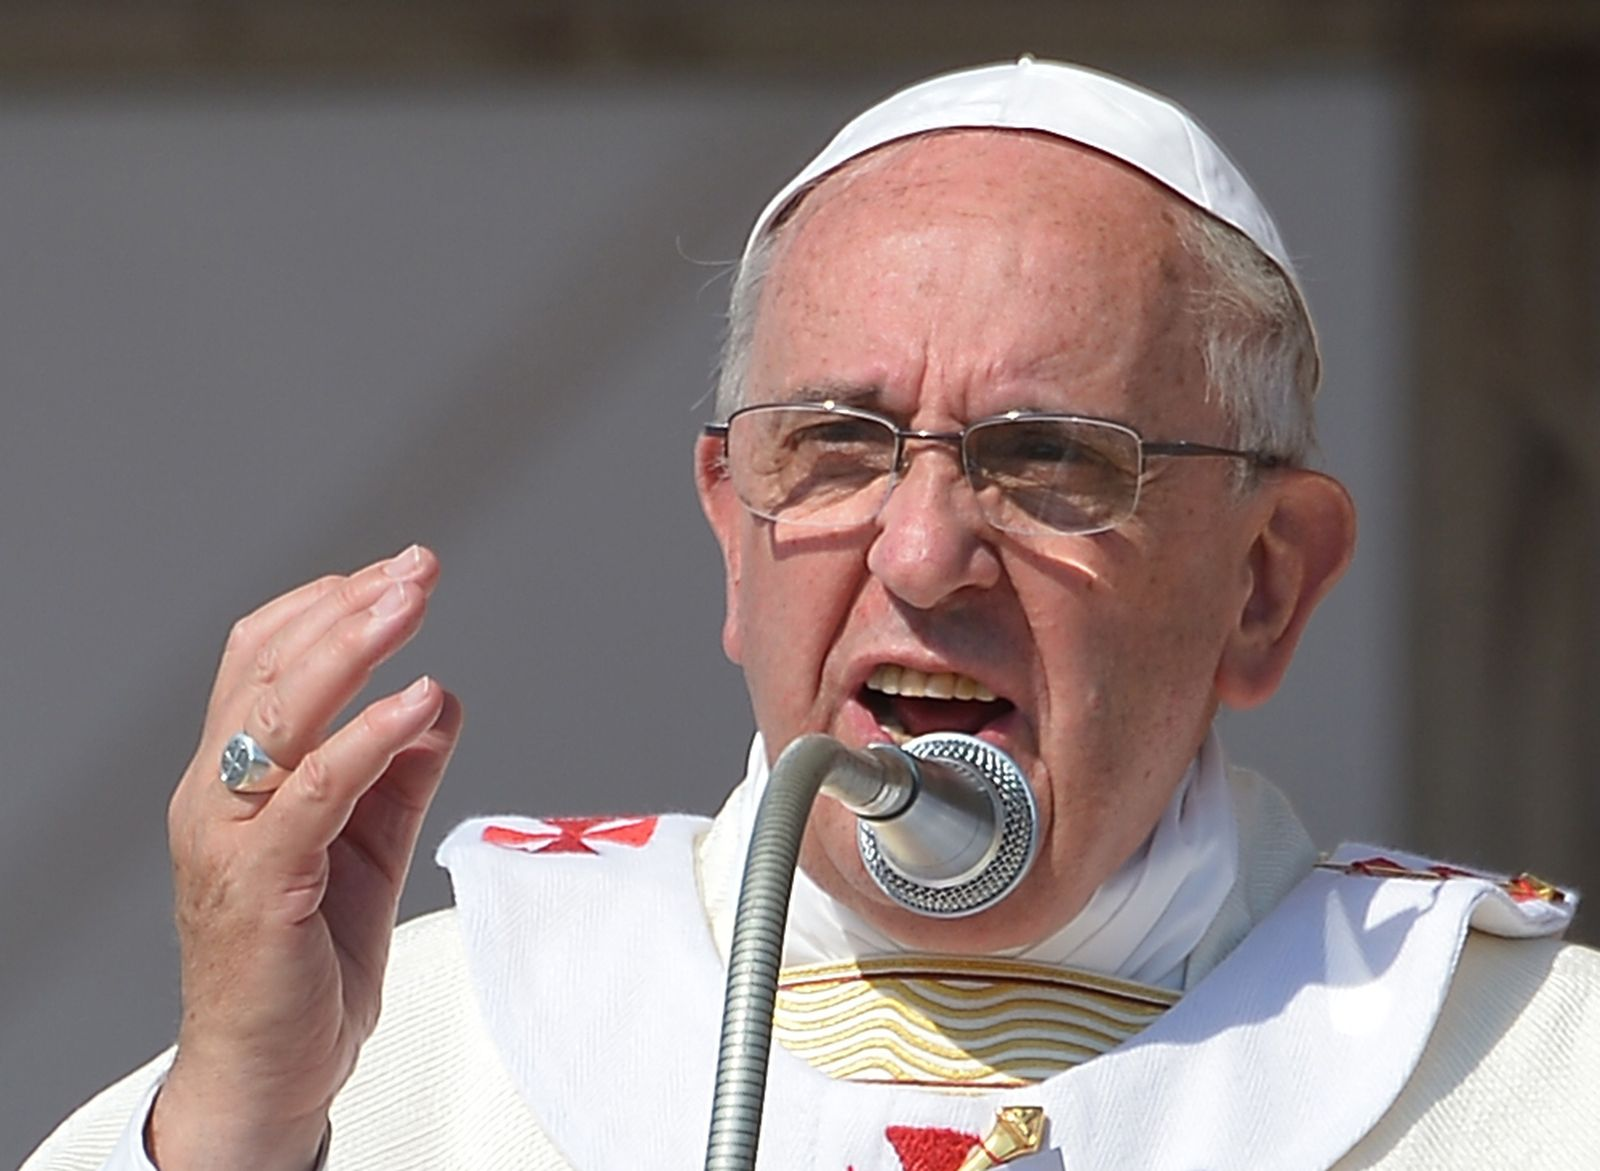 ITALY-POPE-CALABRIA-VISIT